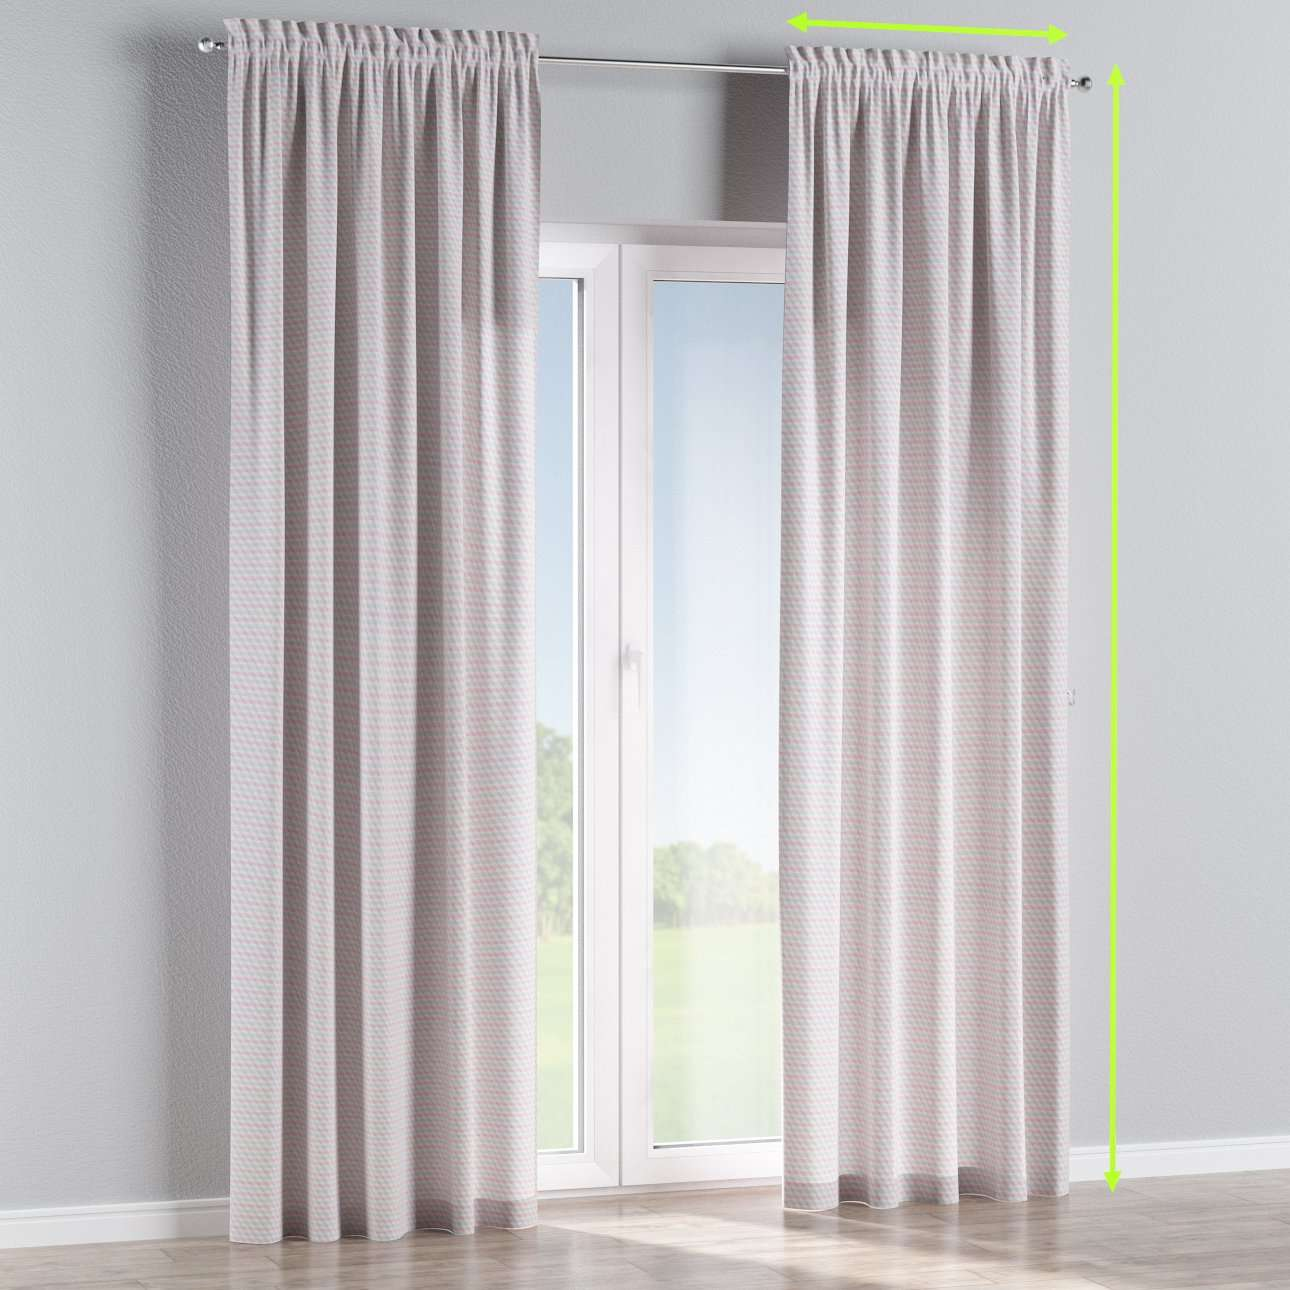 Slot and frill lined curtains in collection Rustica, fabric: 140-30